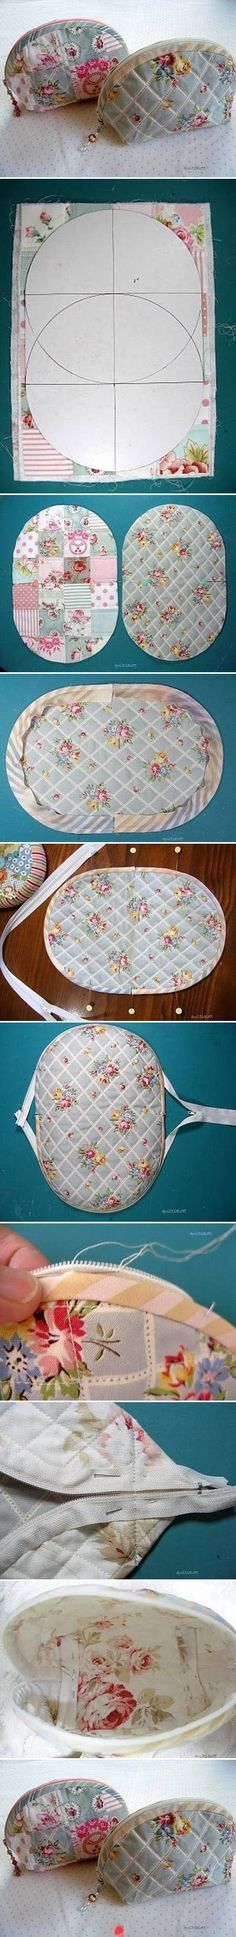 Cute little pouches nice for organizing things in purses or knitting bags.